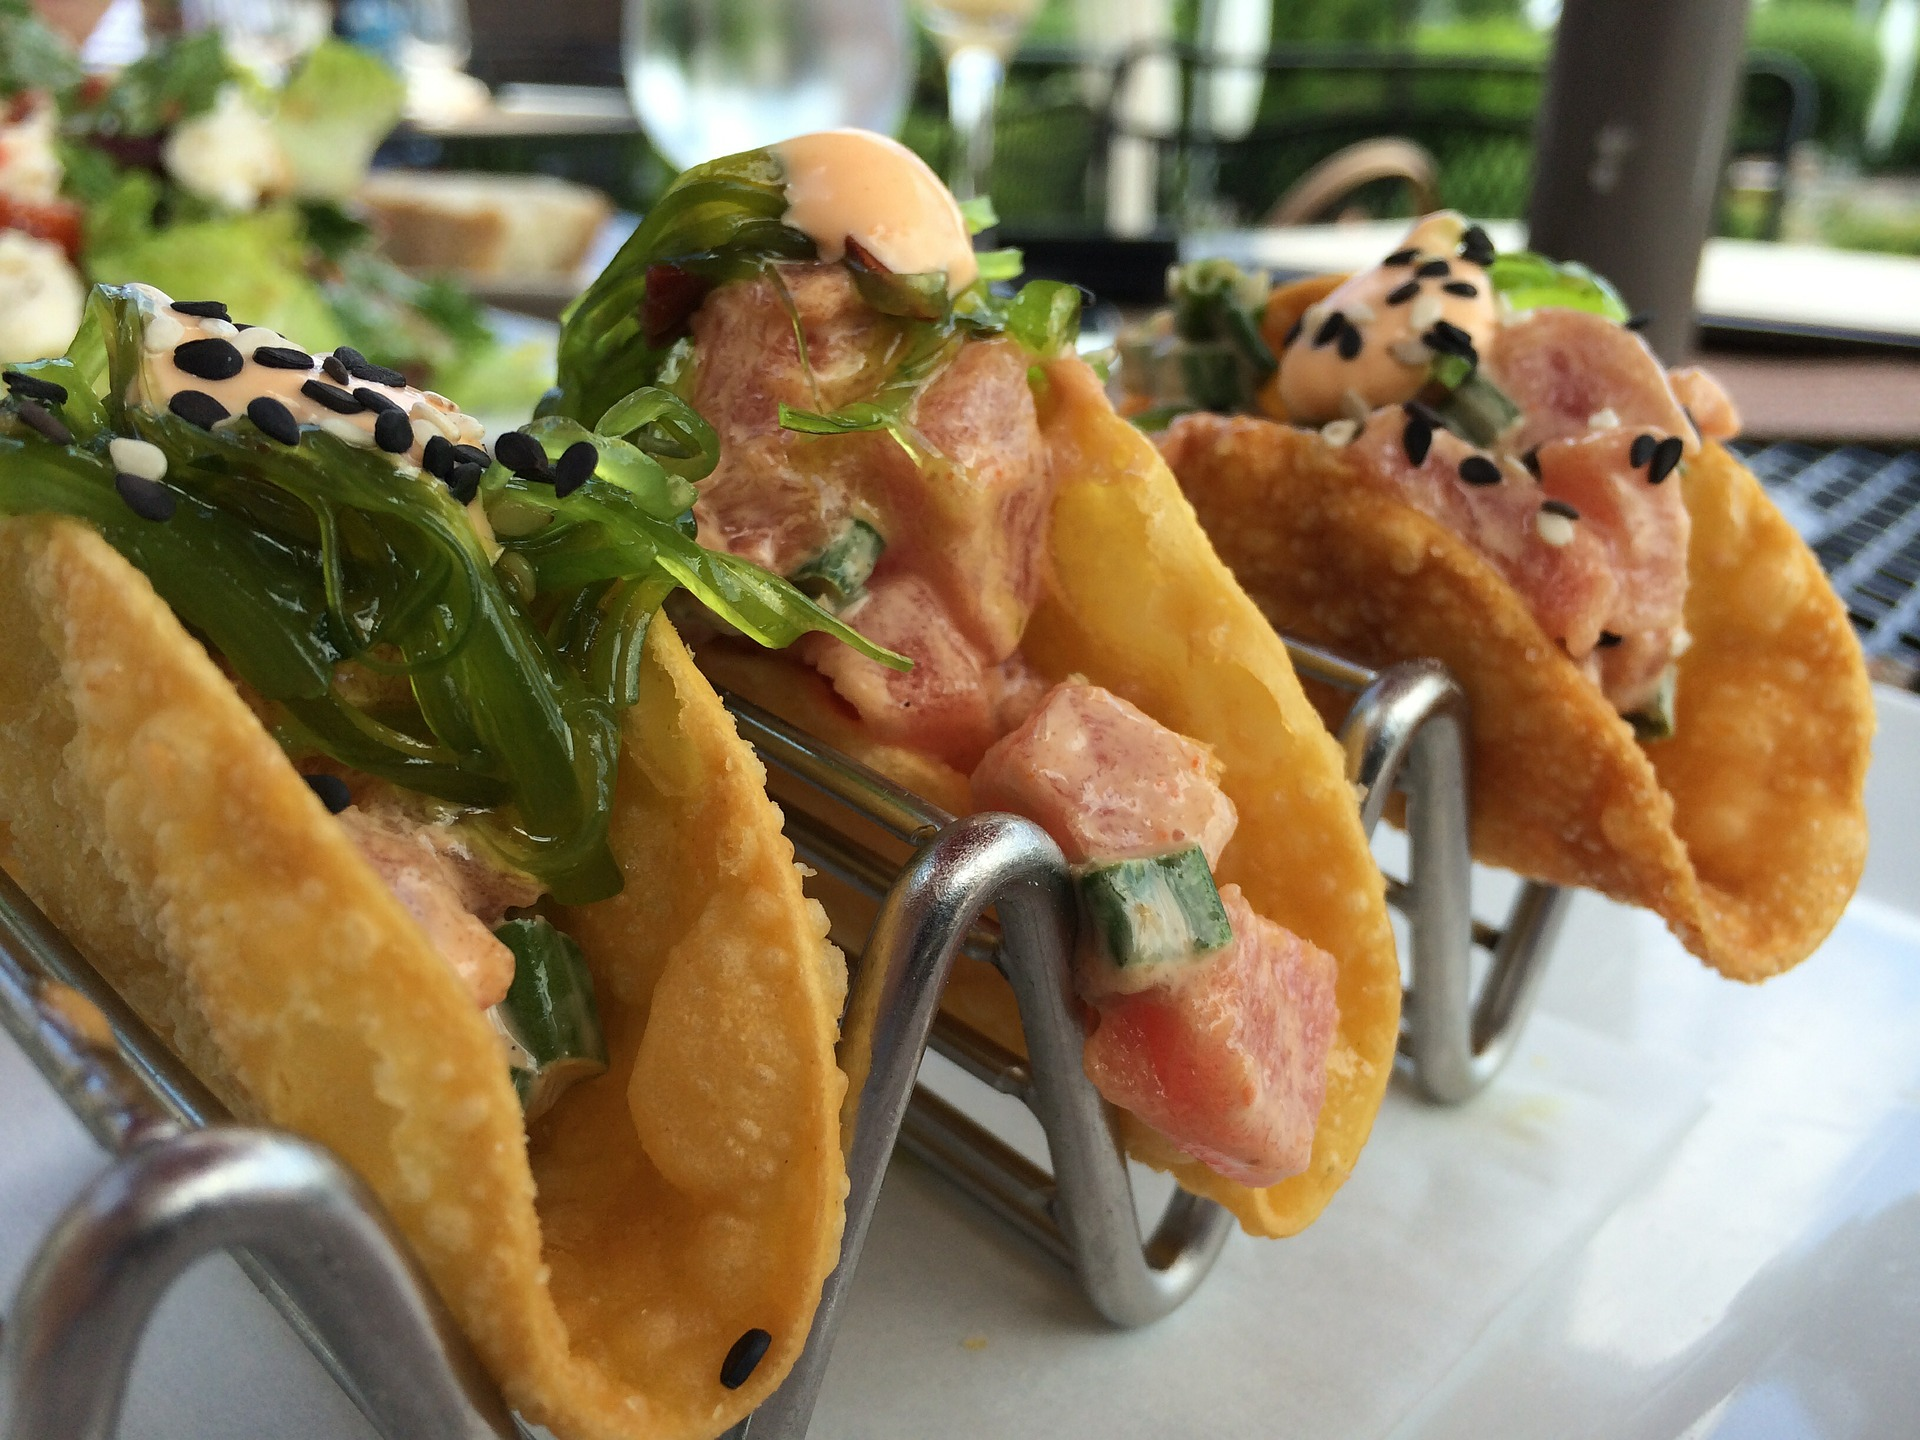 Try a banh mi flavored taco the next you stop by the Peached Tortilla.